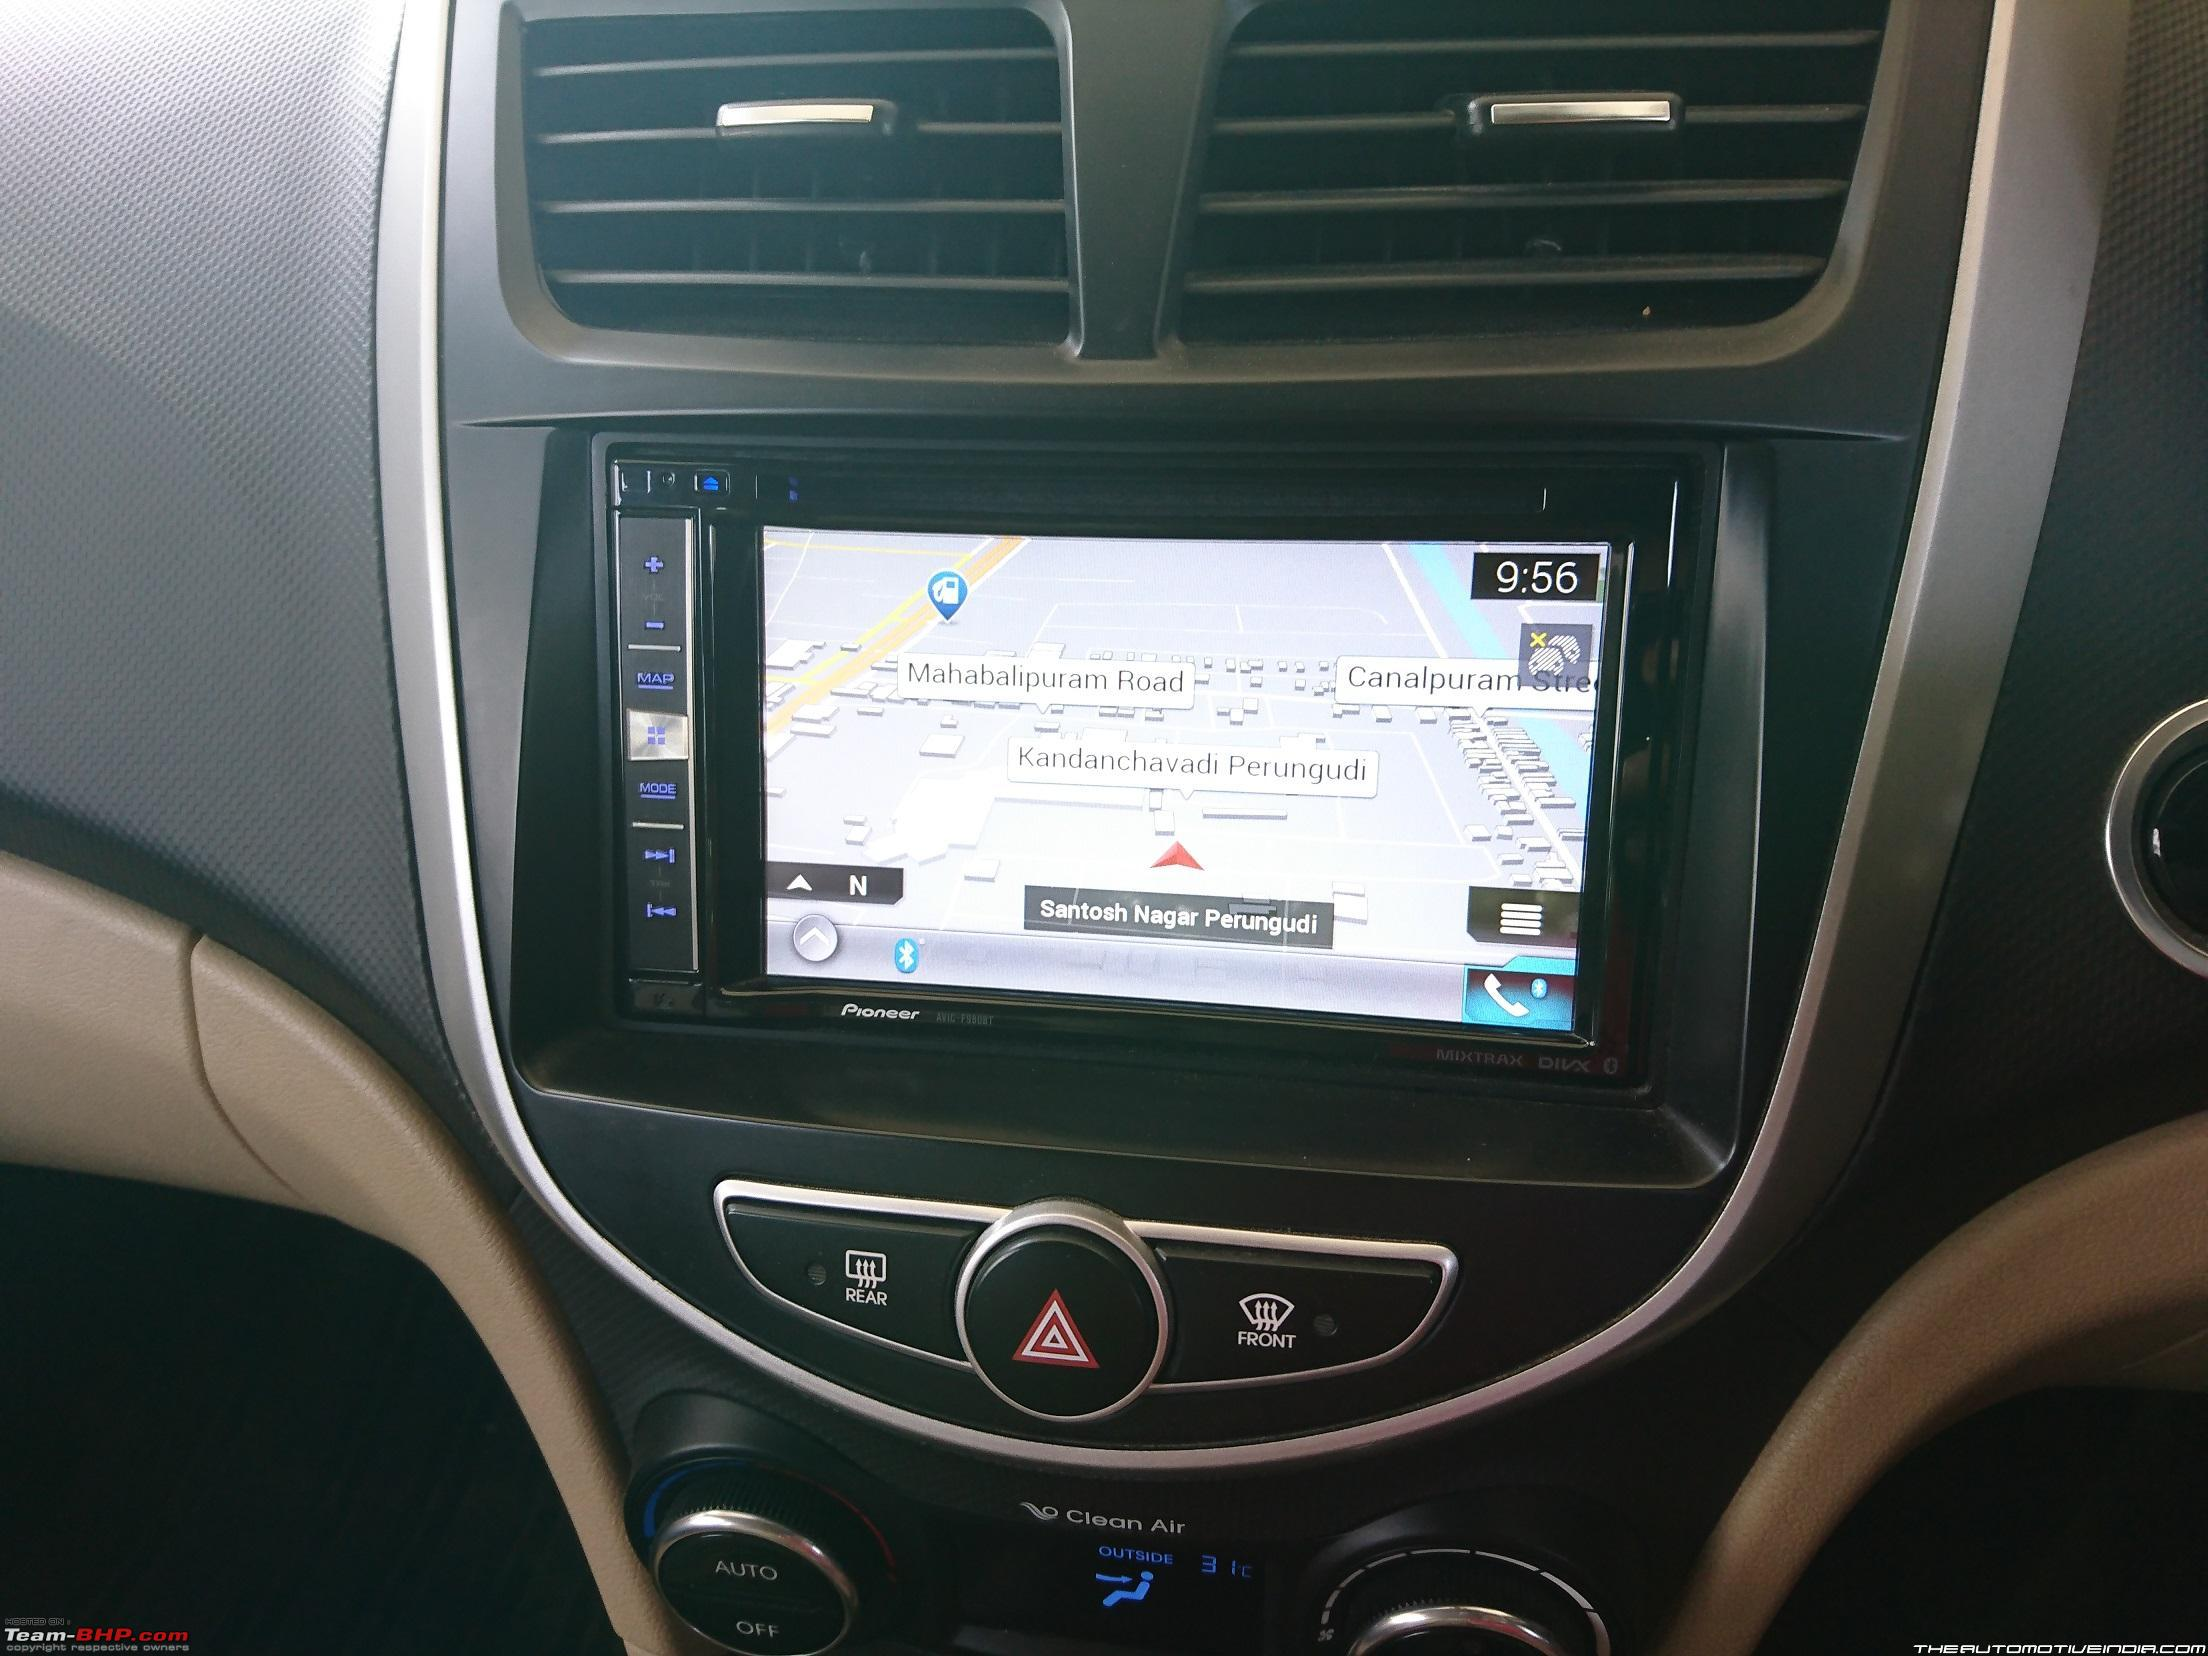 Hyundai Fluidic Verna Upgraded To Oem Head Unit With Touchscreen Pioneer Car Stereo Wiring Harness Diagram Further Radio Navigation More